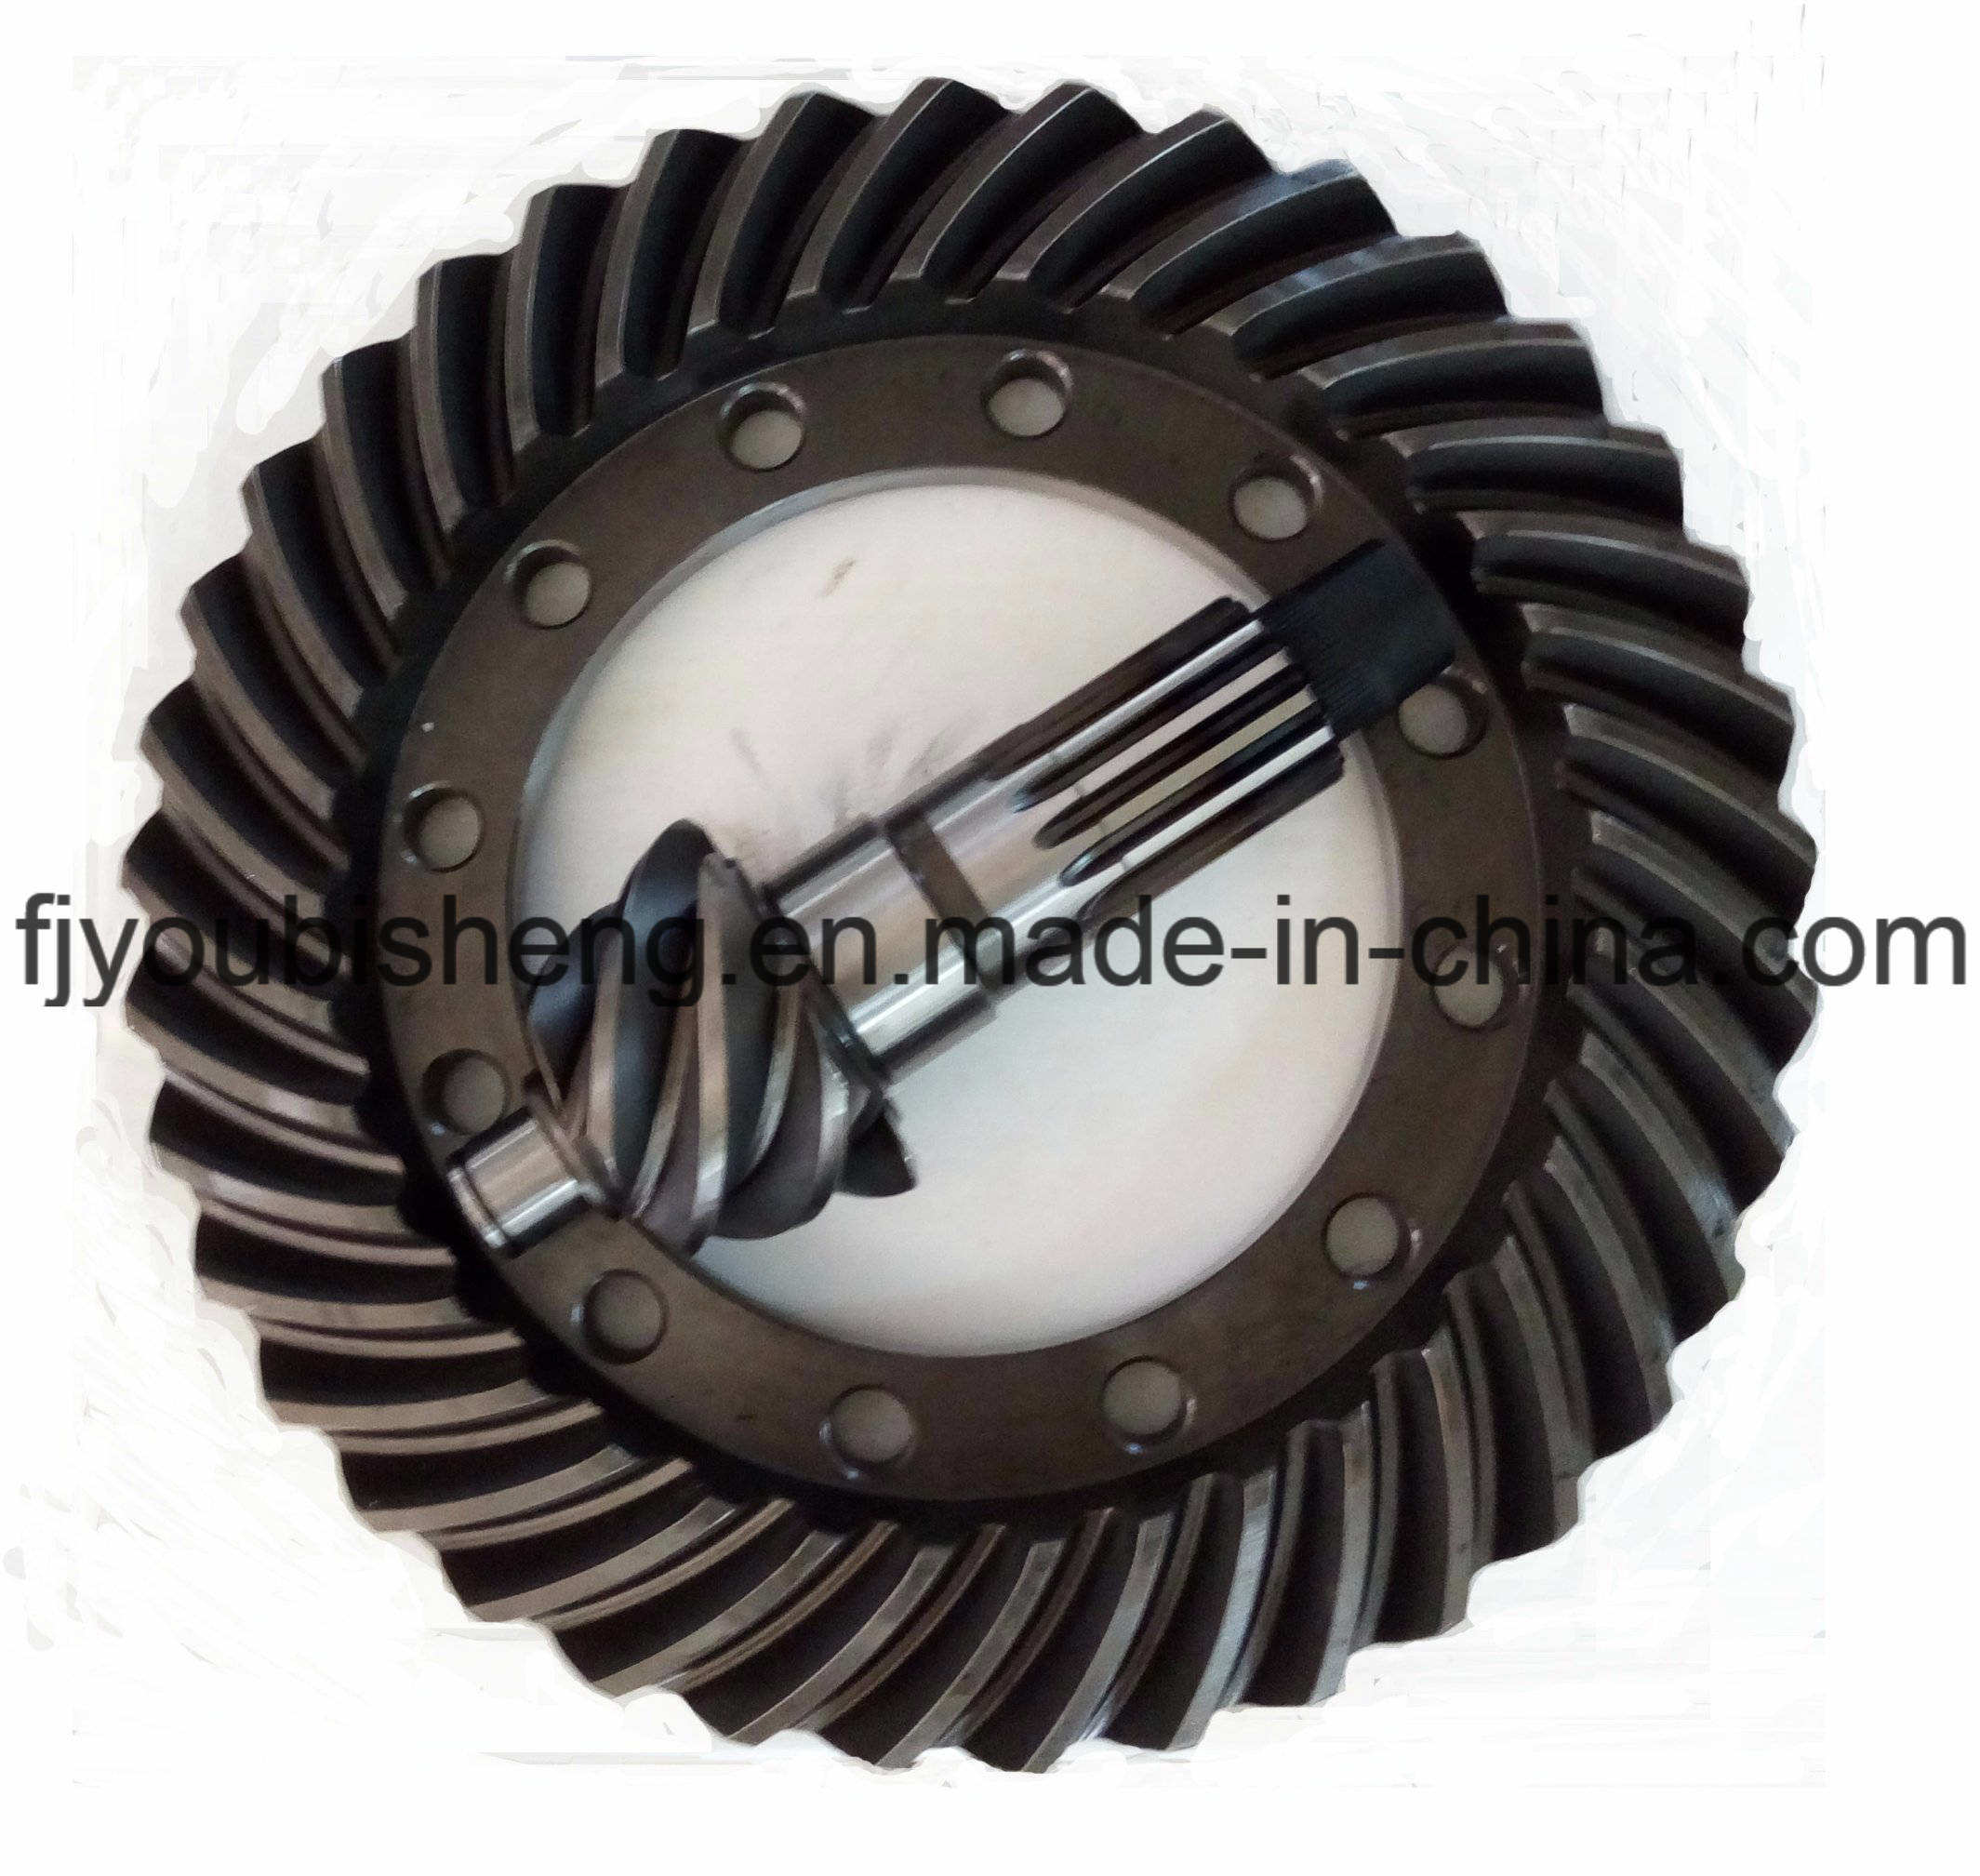 Crown Wheel and Pinion for Mitsubishi/Final Gear/Mc817479/PS190/Ratio 6: 37